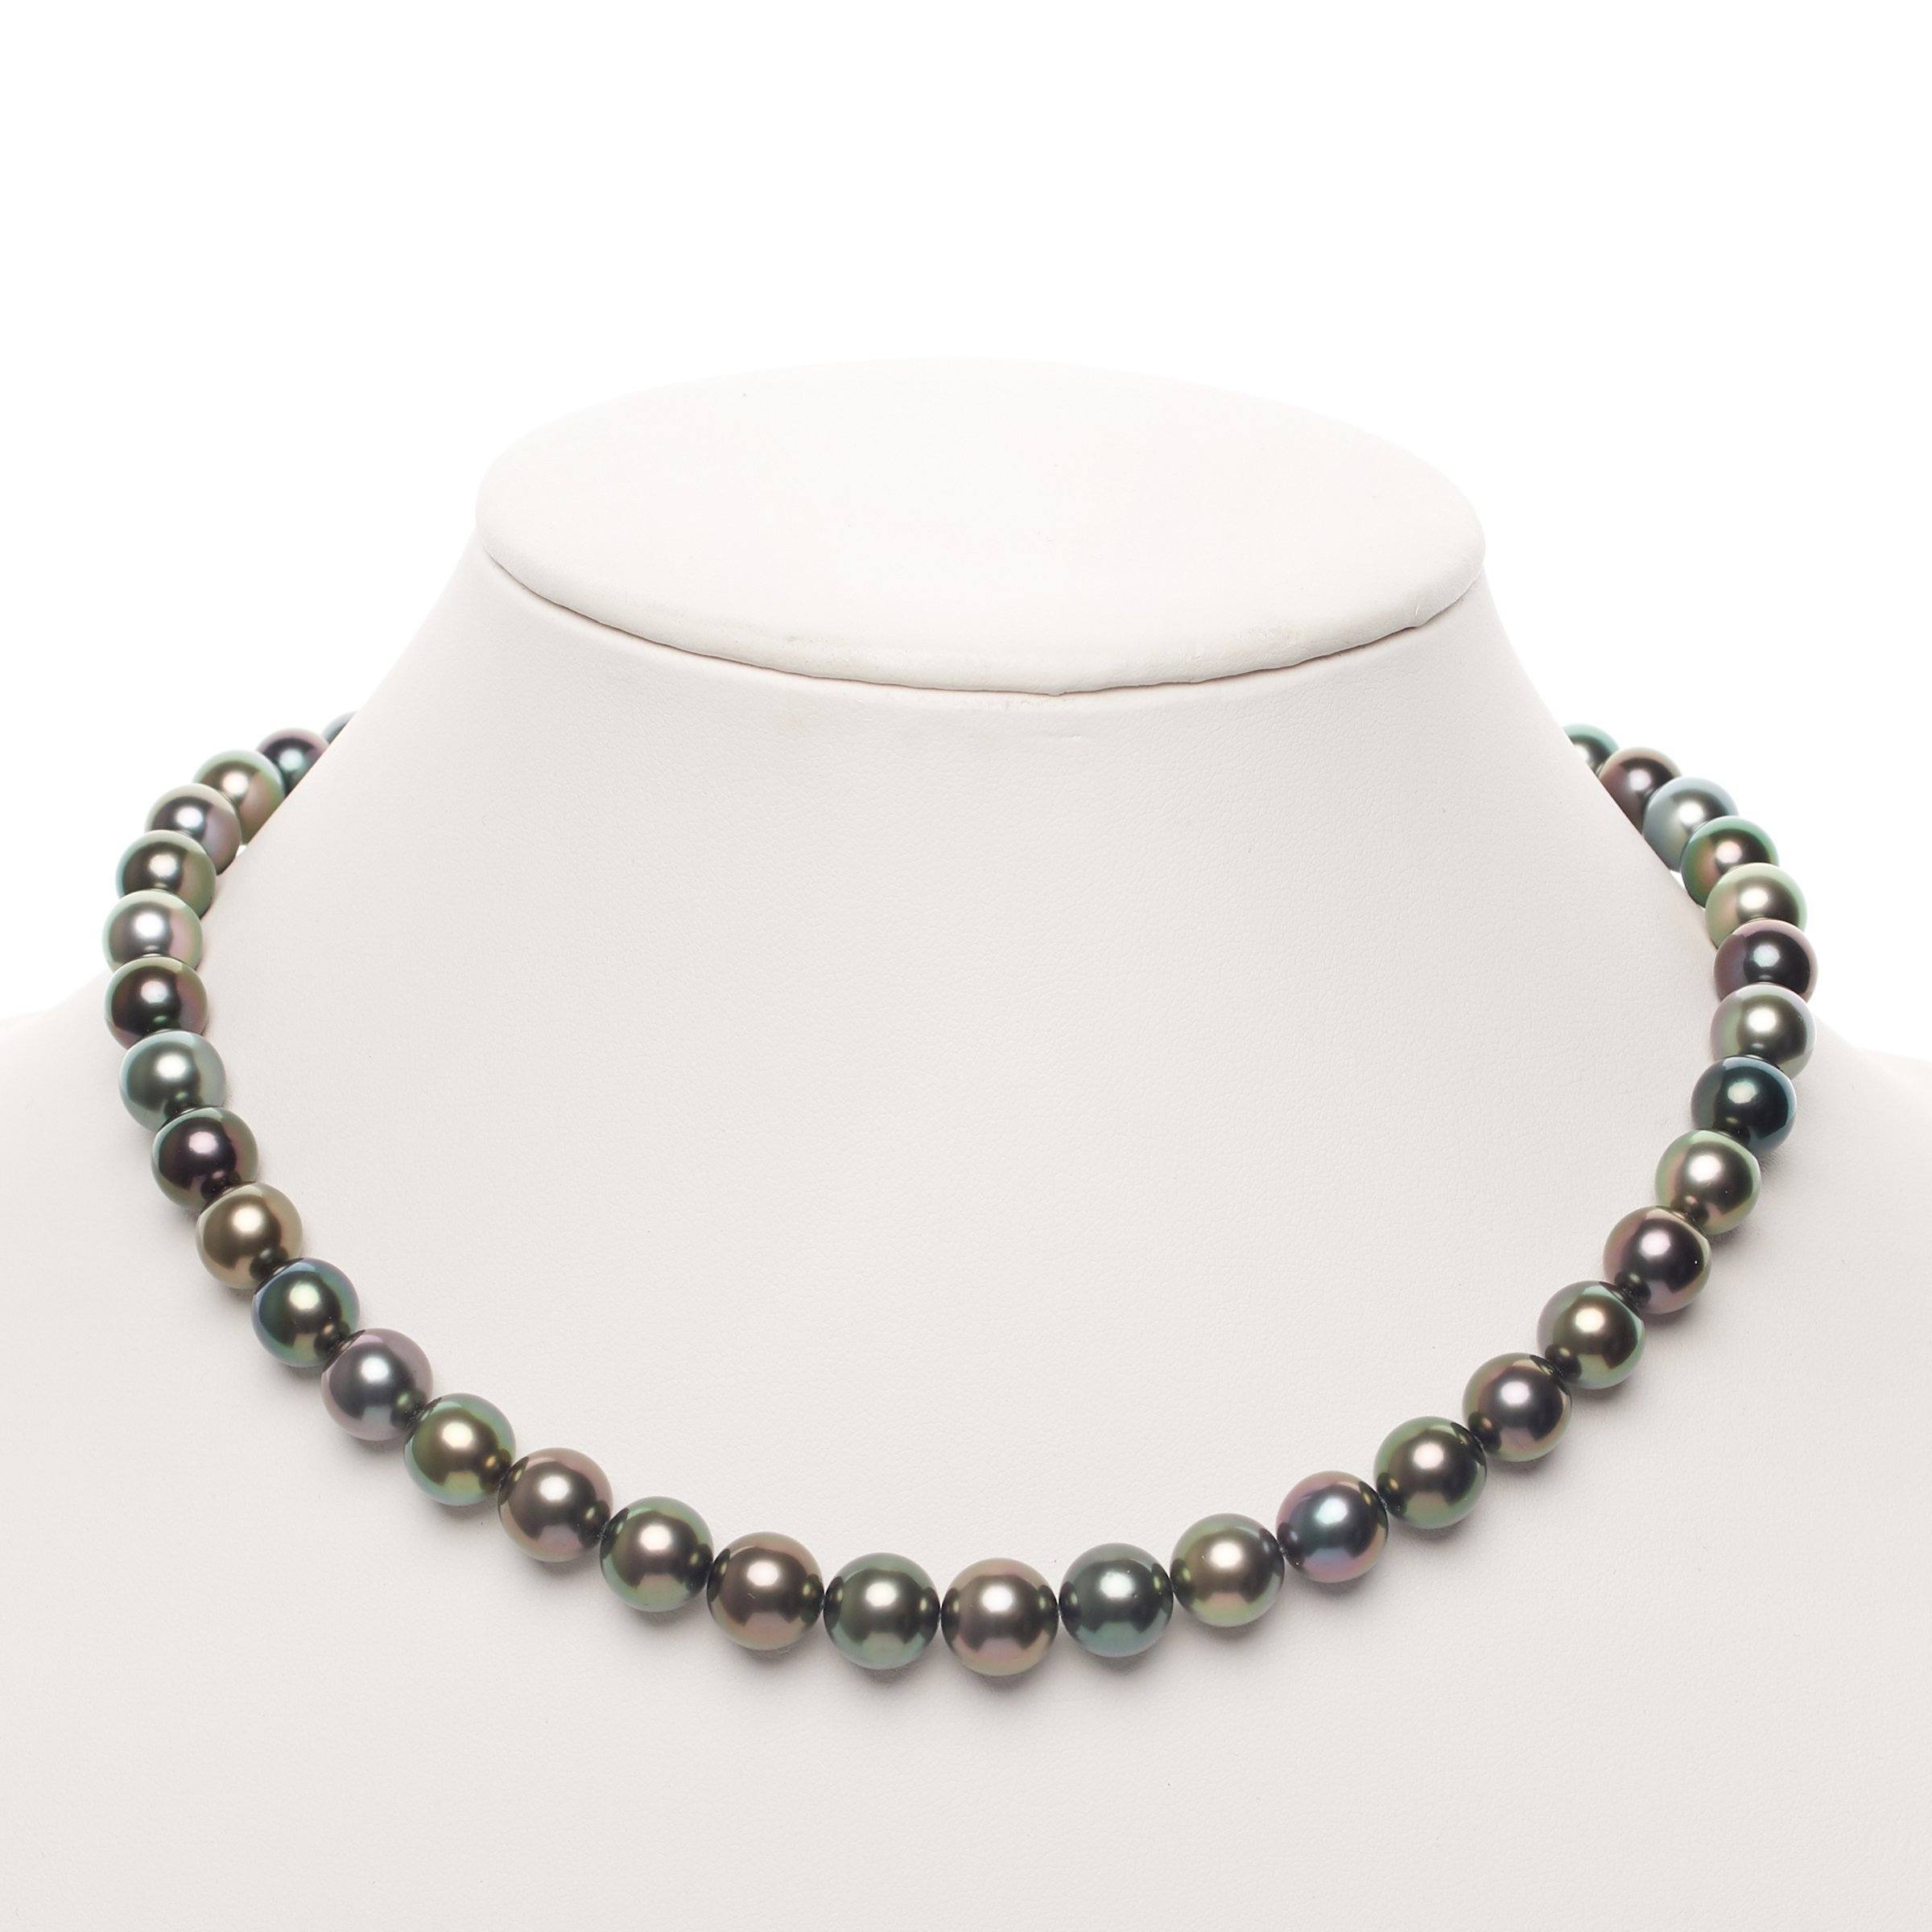 18-inch 8.3-9.8 mm AAA Round Multicolor Tahitian Pearl Necklace